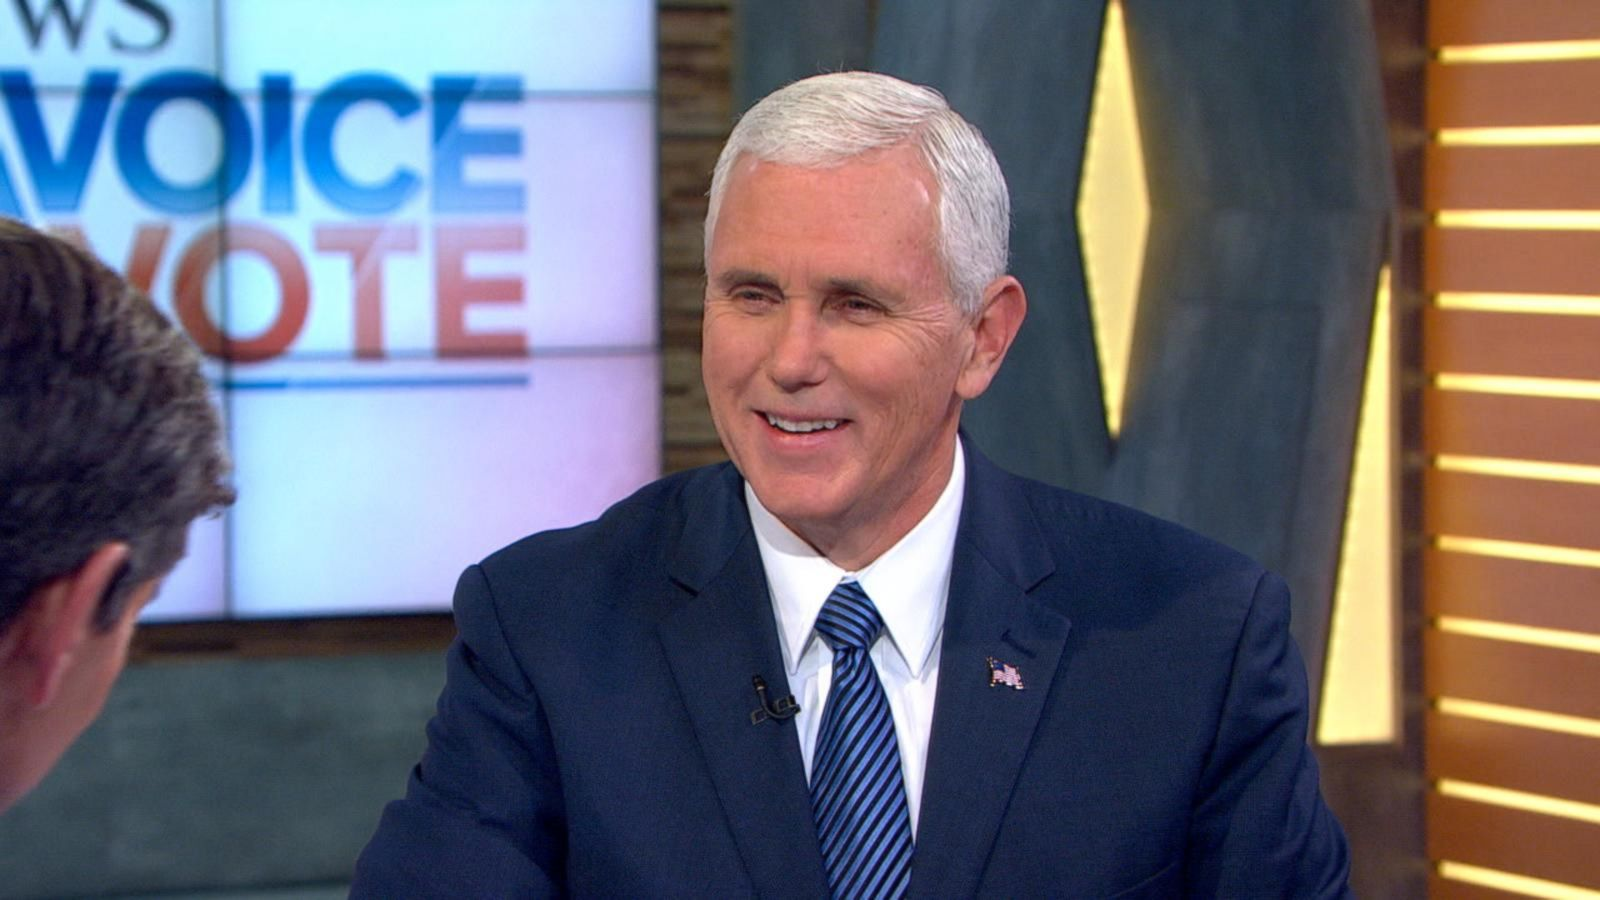 VIDEO: Mike Pence Reacts to Airplane Incident